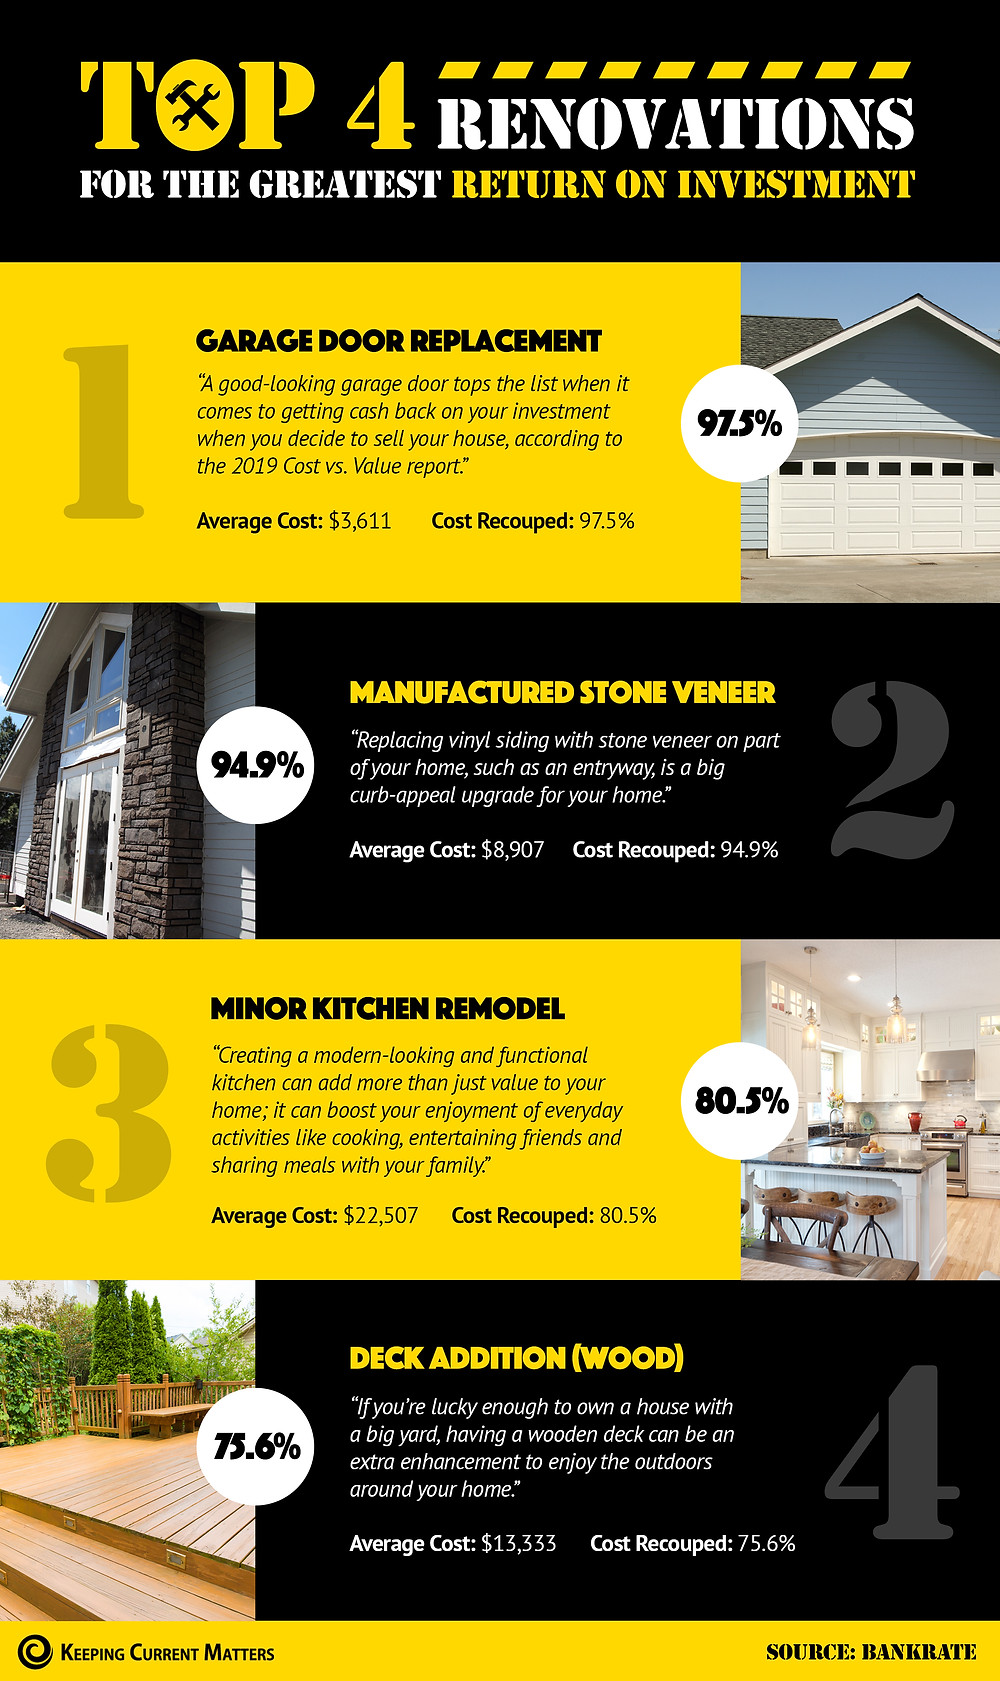 Top 4 Renovations for the Greatest Return on Investment! [INFOGRAPHIC] | Keeping Current Matters